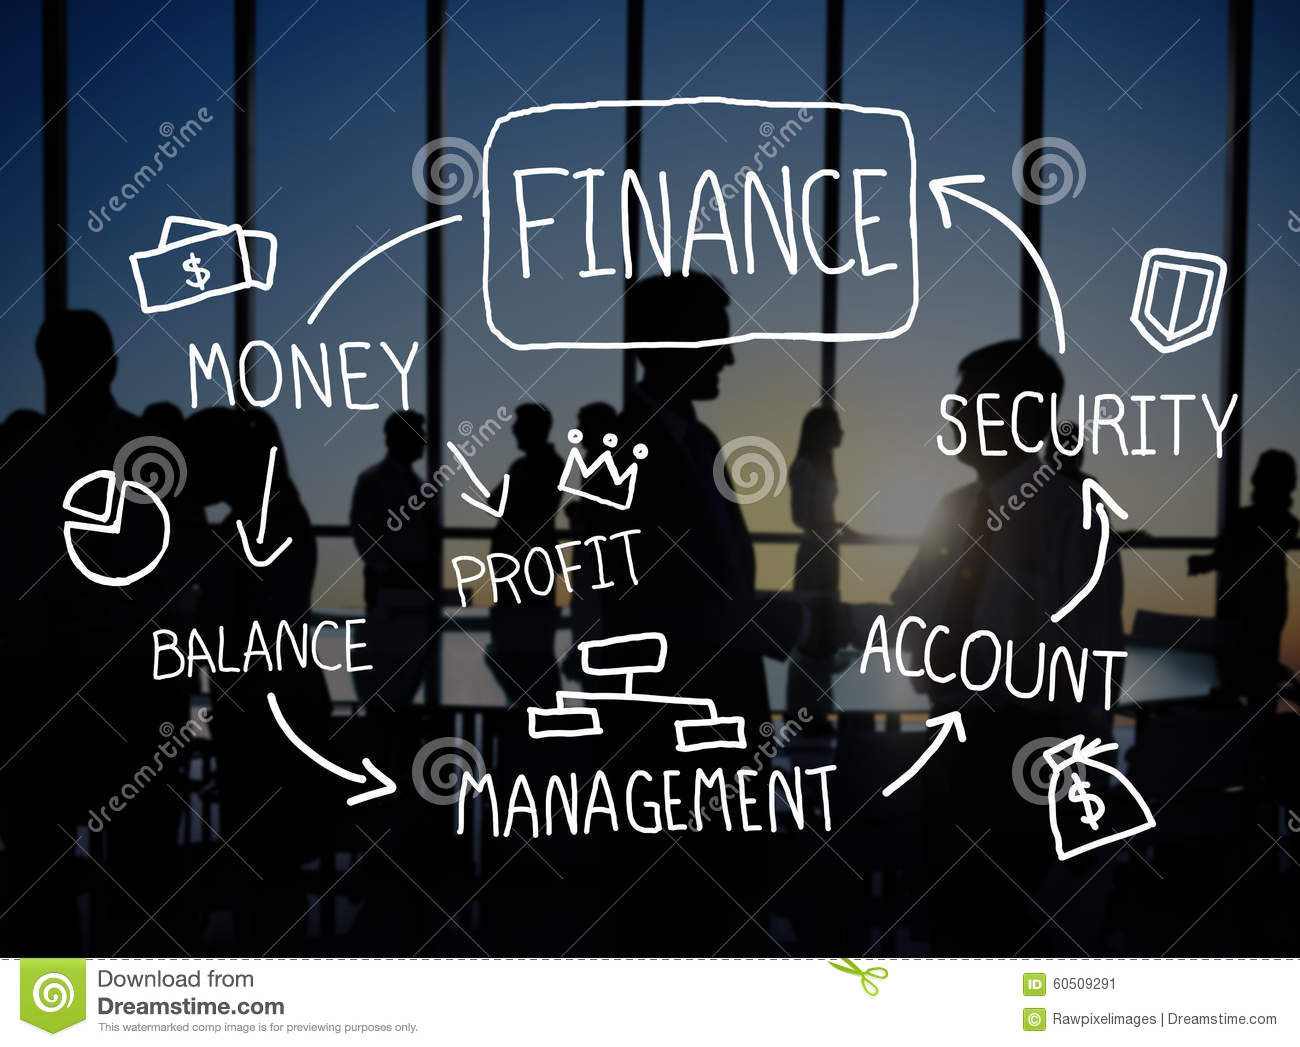 finance-business-accounting-analysis-management-concept-60509291.jpg